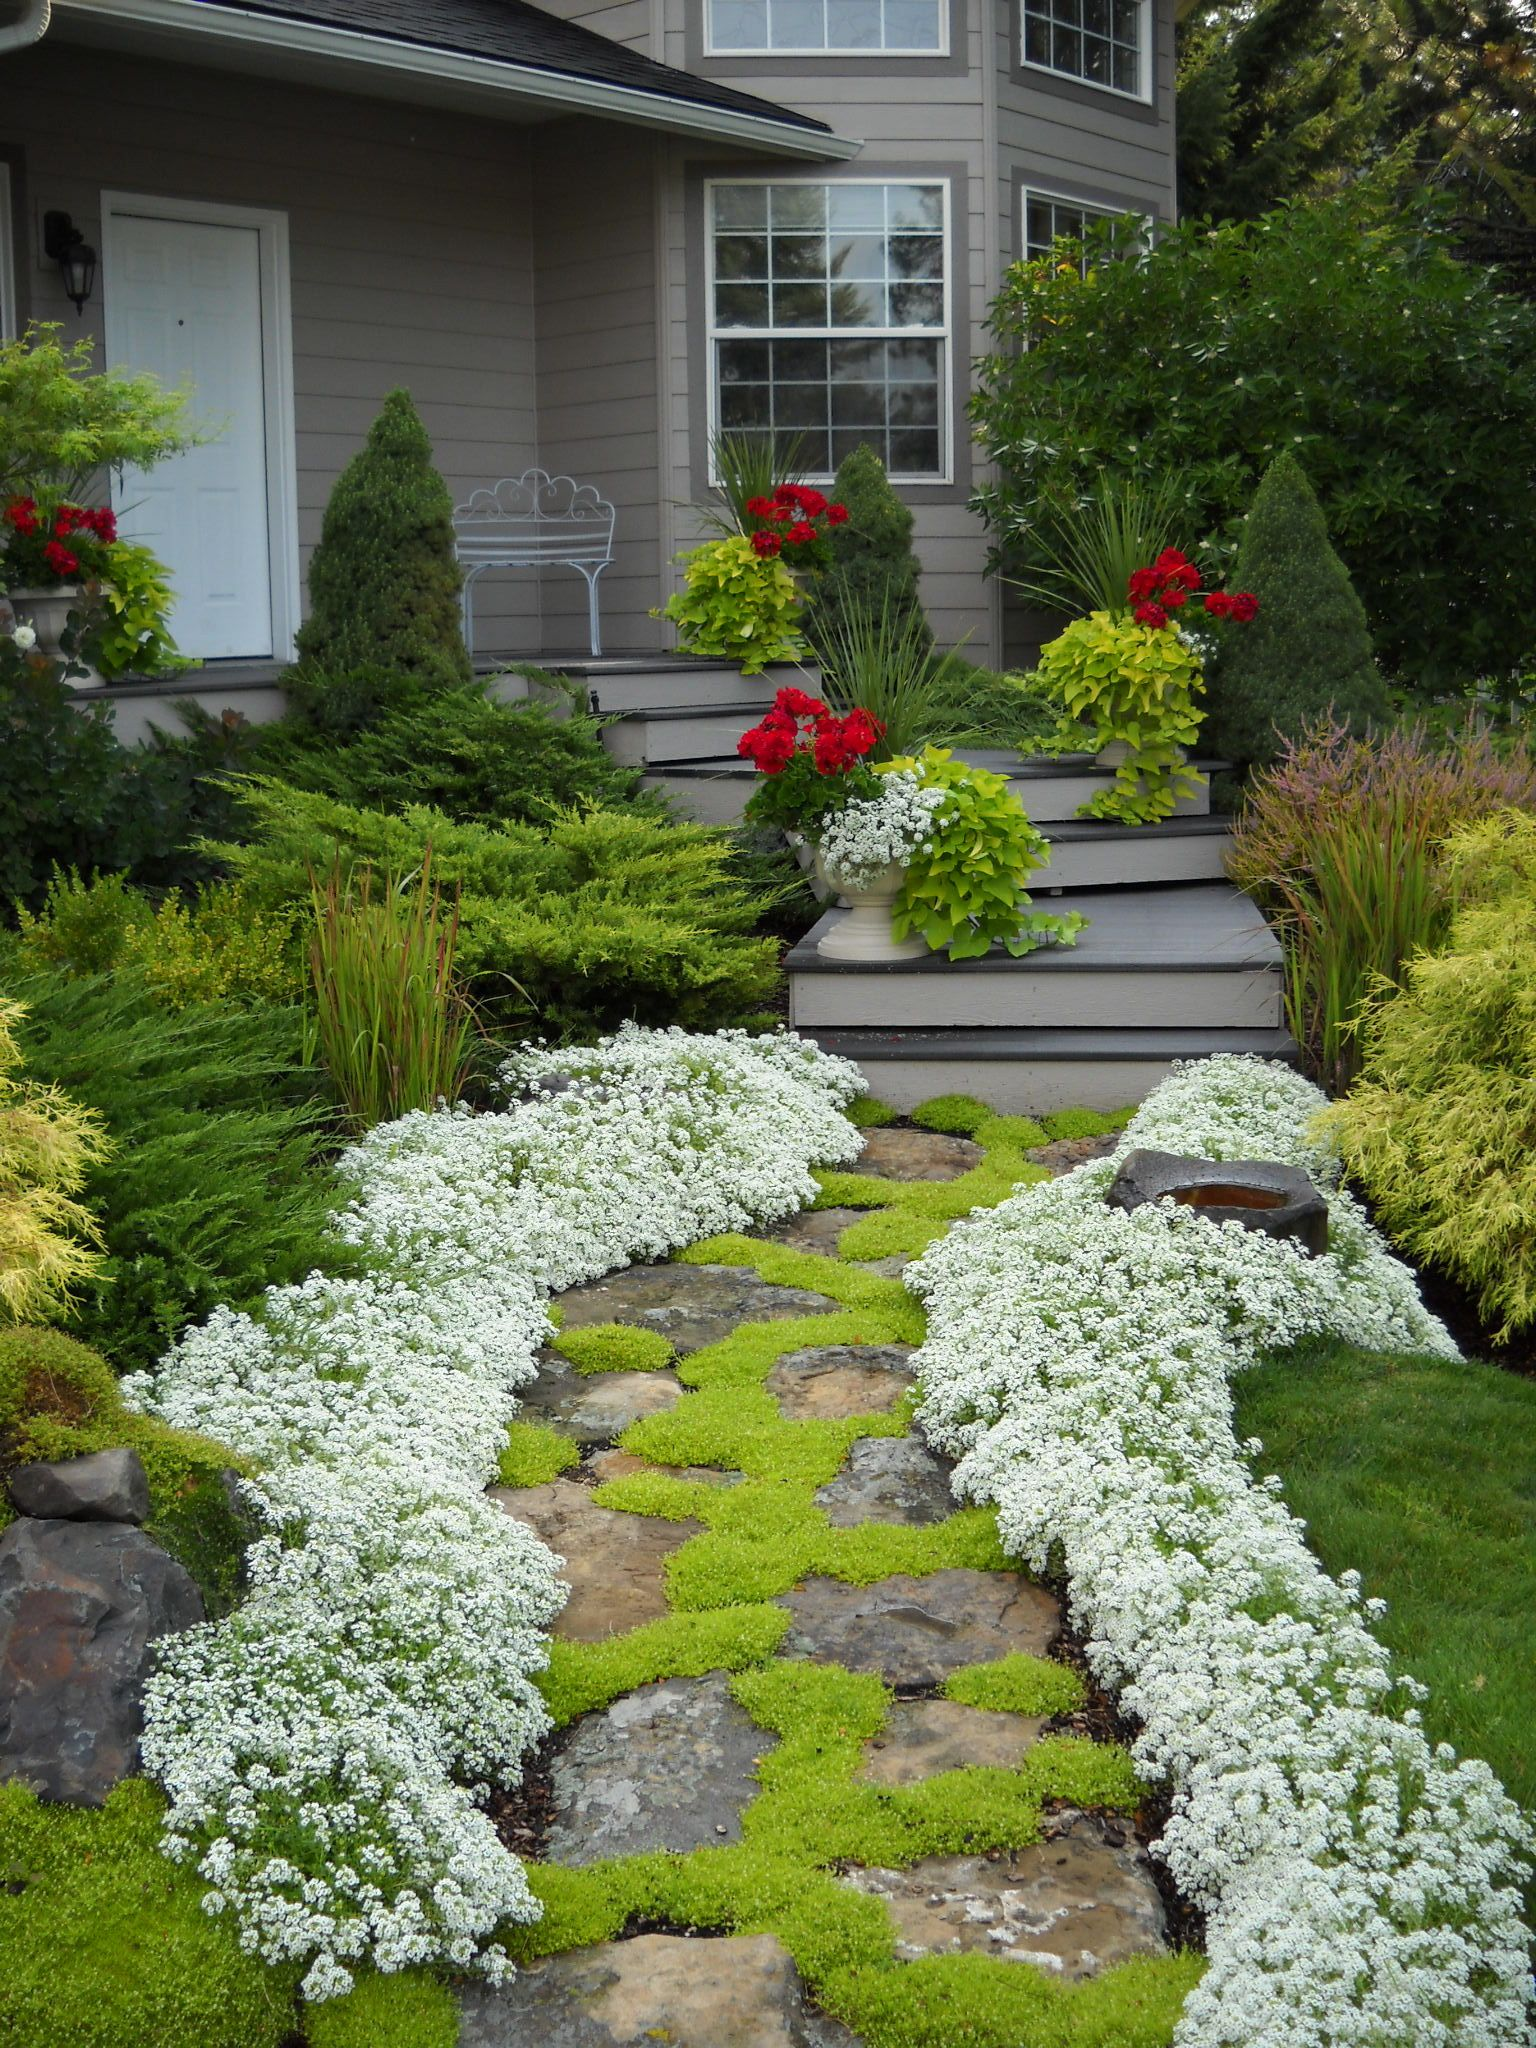 Beautiful Simple Garden Design Plans: More From Bob And Claudia's Garden In Idaho